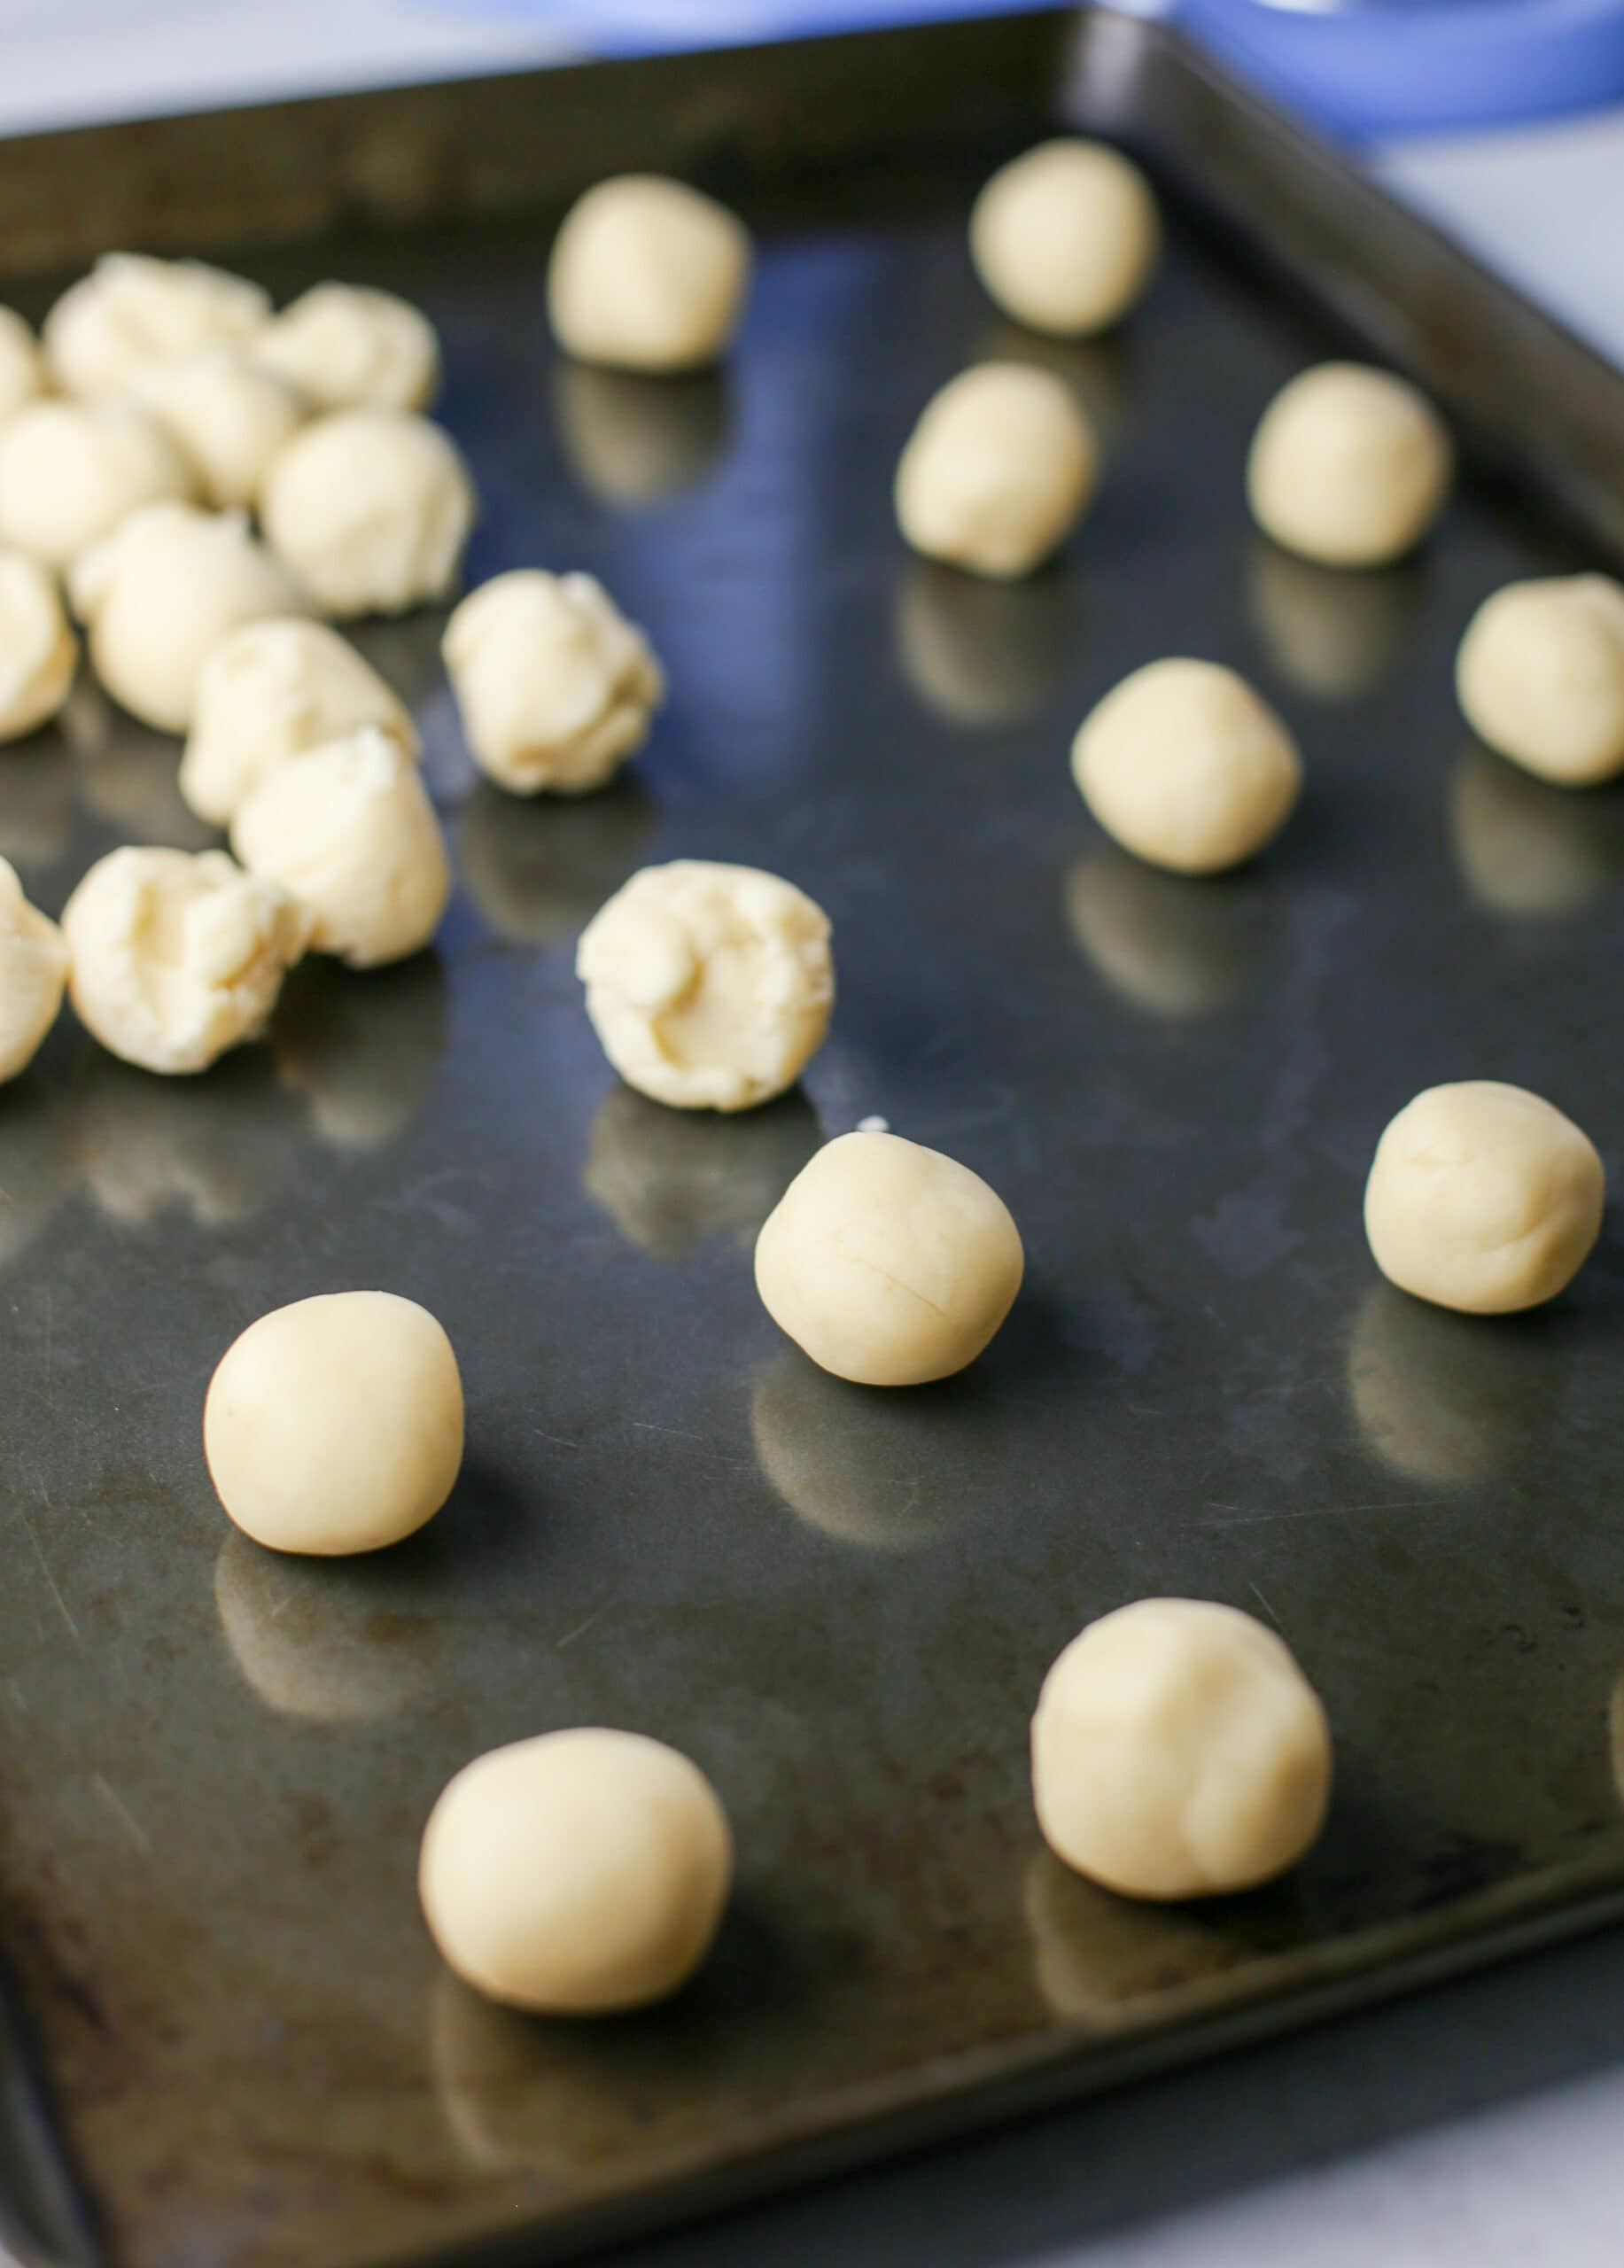 Raw condensed milk cookie dough balls on a baking sheet.